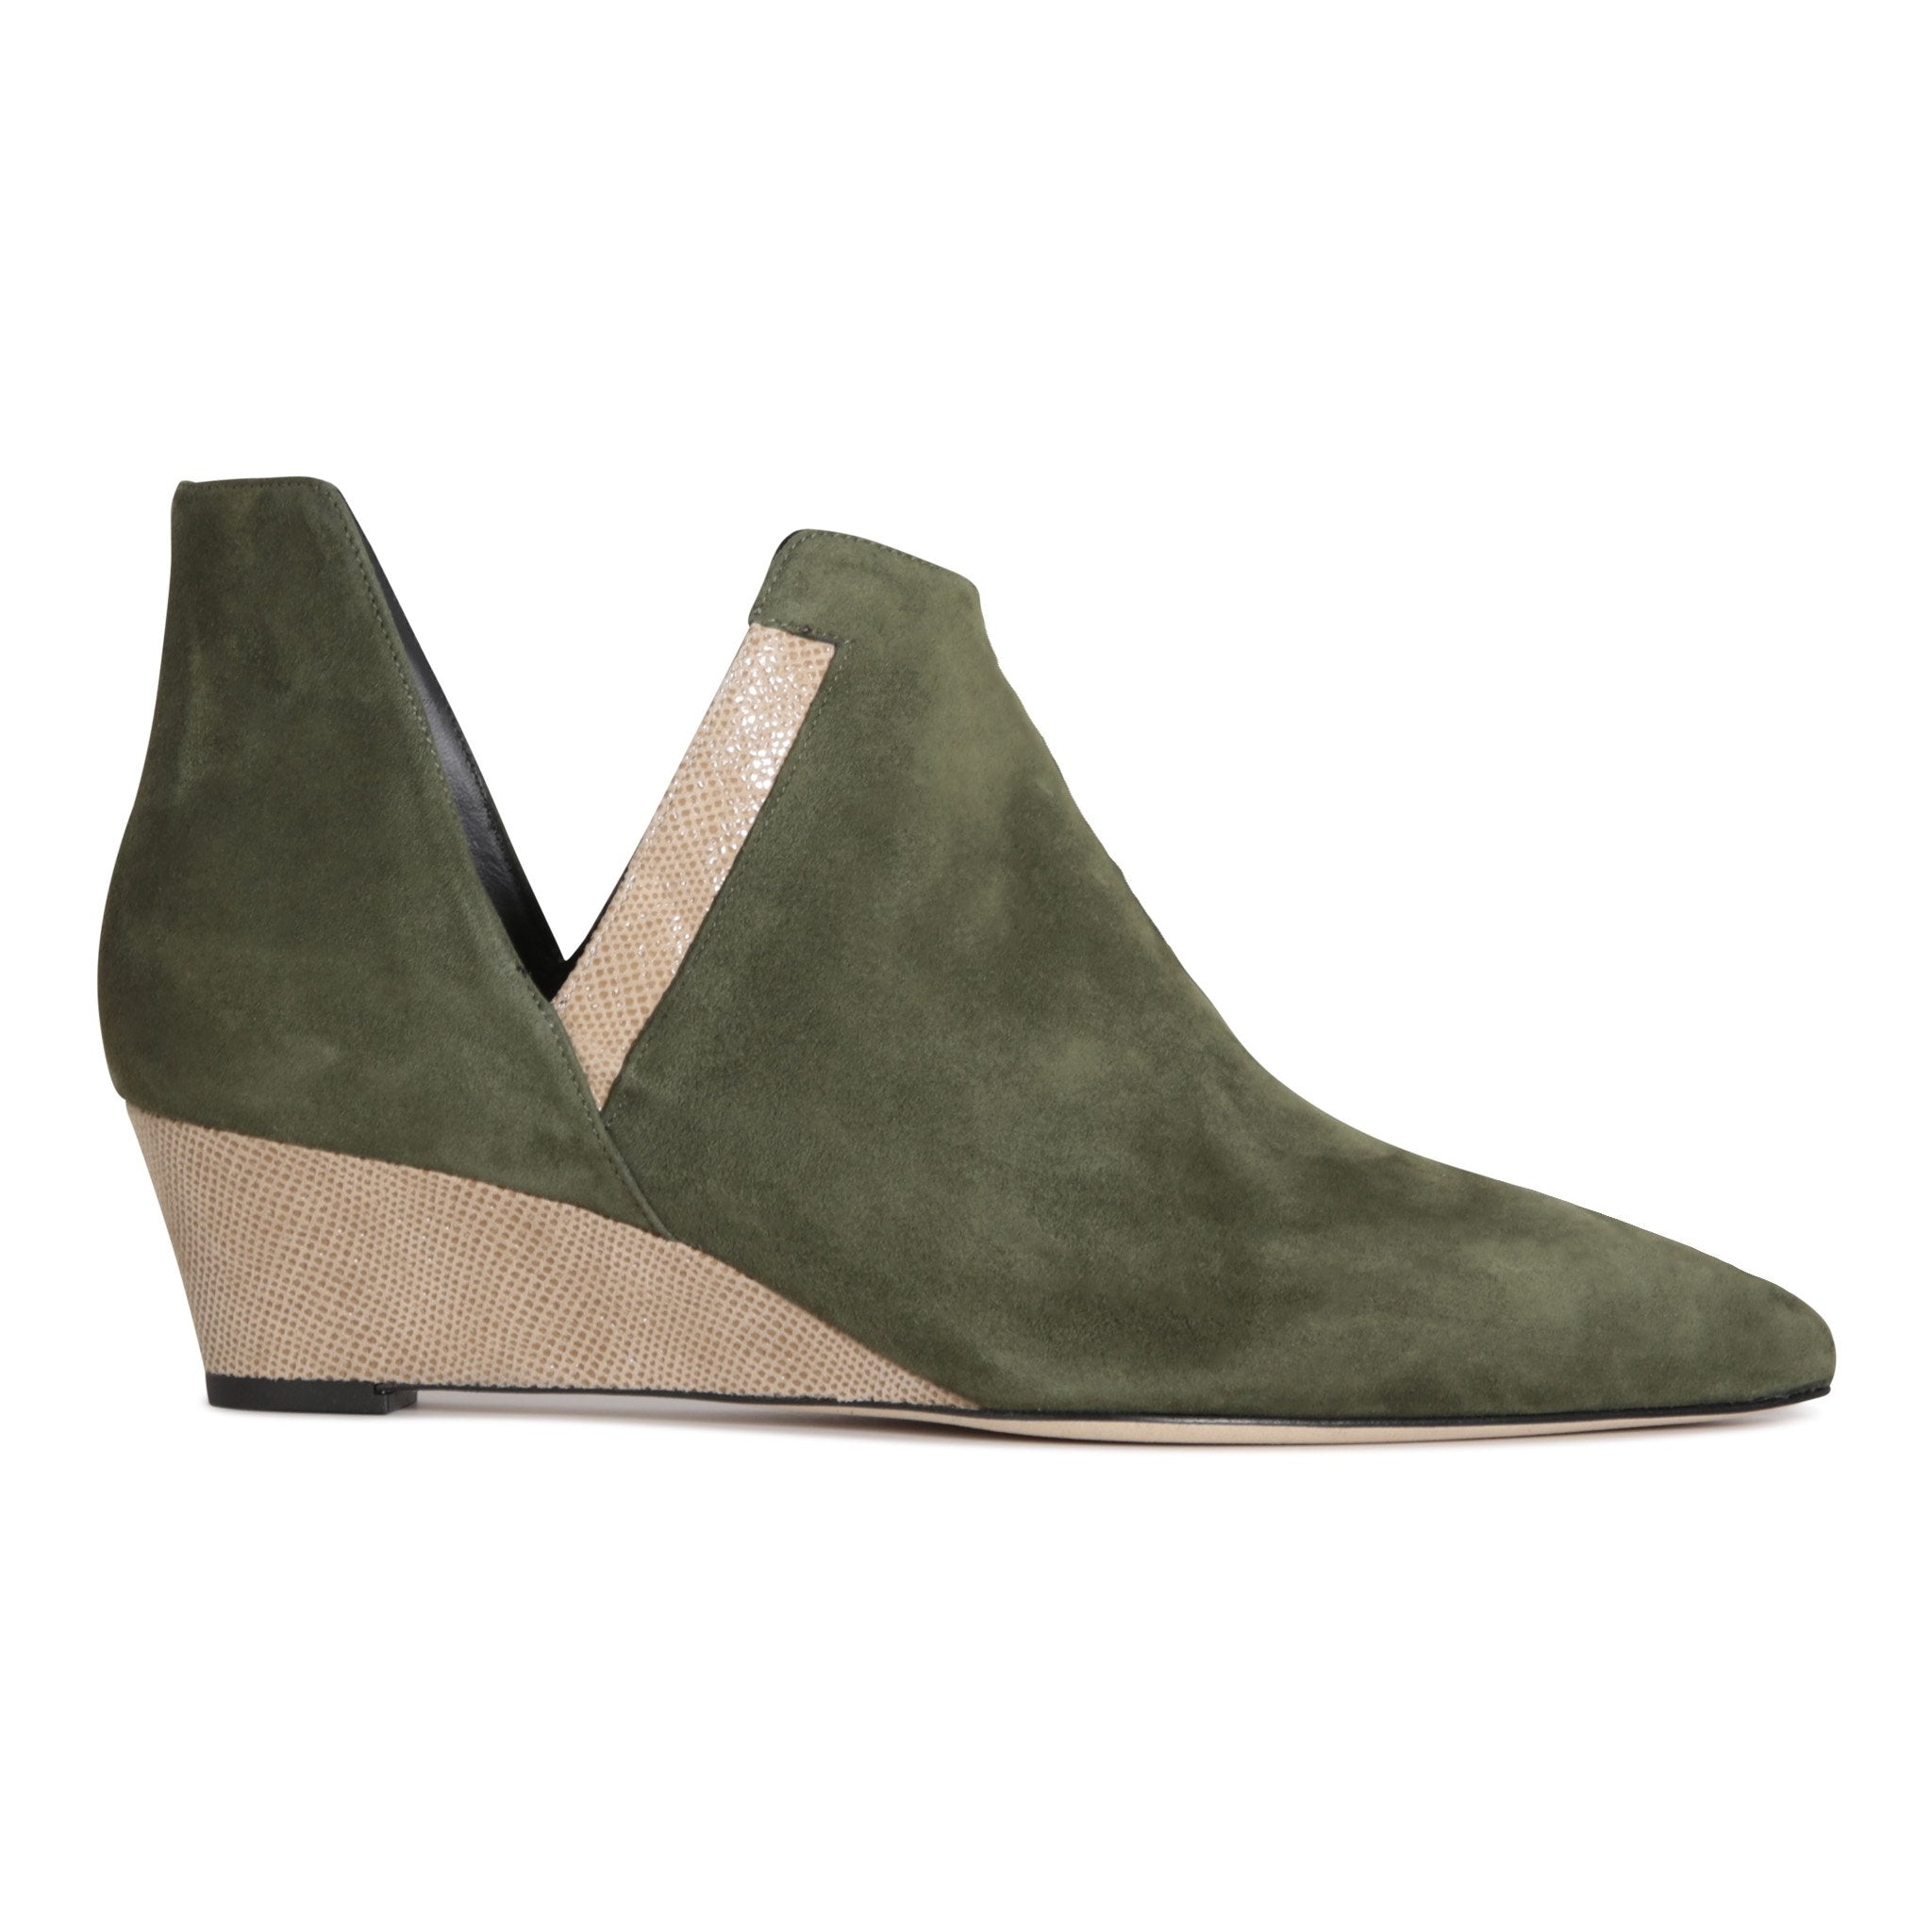 SYRENE - Velukid Moss + Karung Tan, VIAJIYU - Women's Hand Made Sustainable Luxury Shoes. Made in Italy. Made to Order.